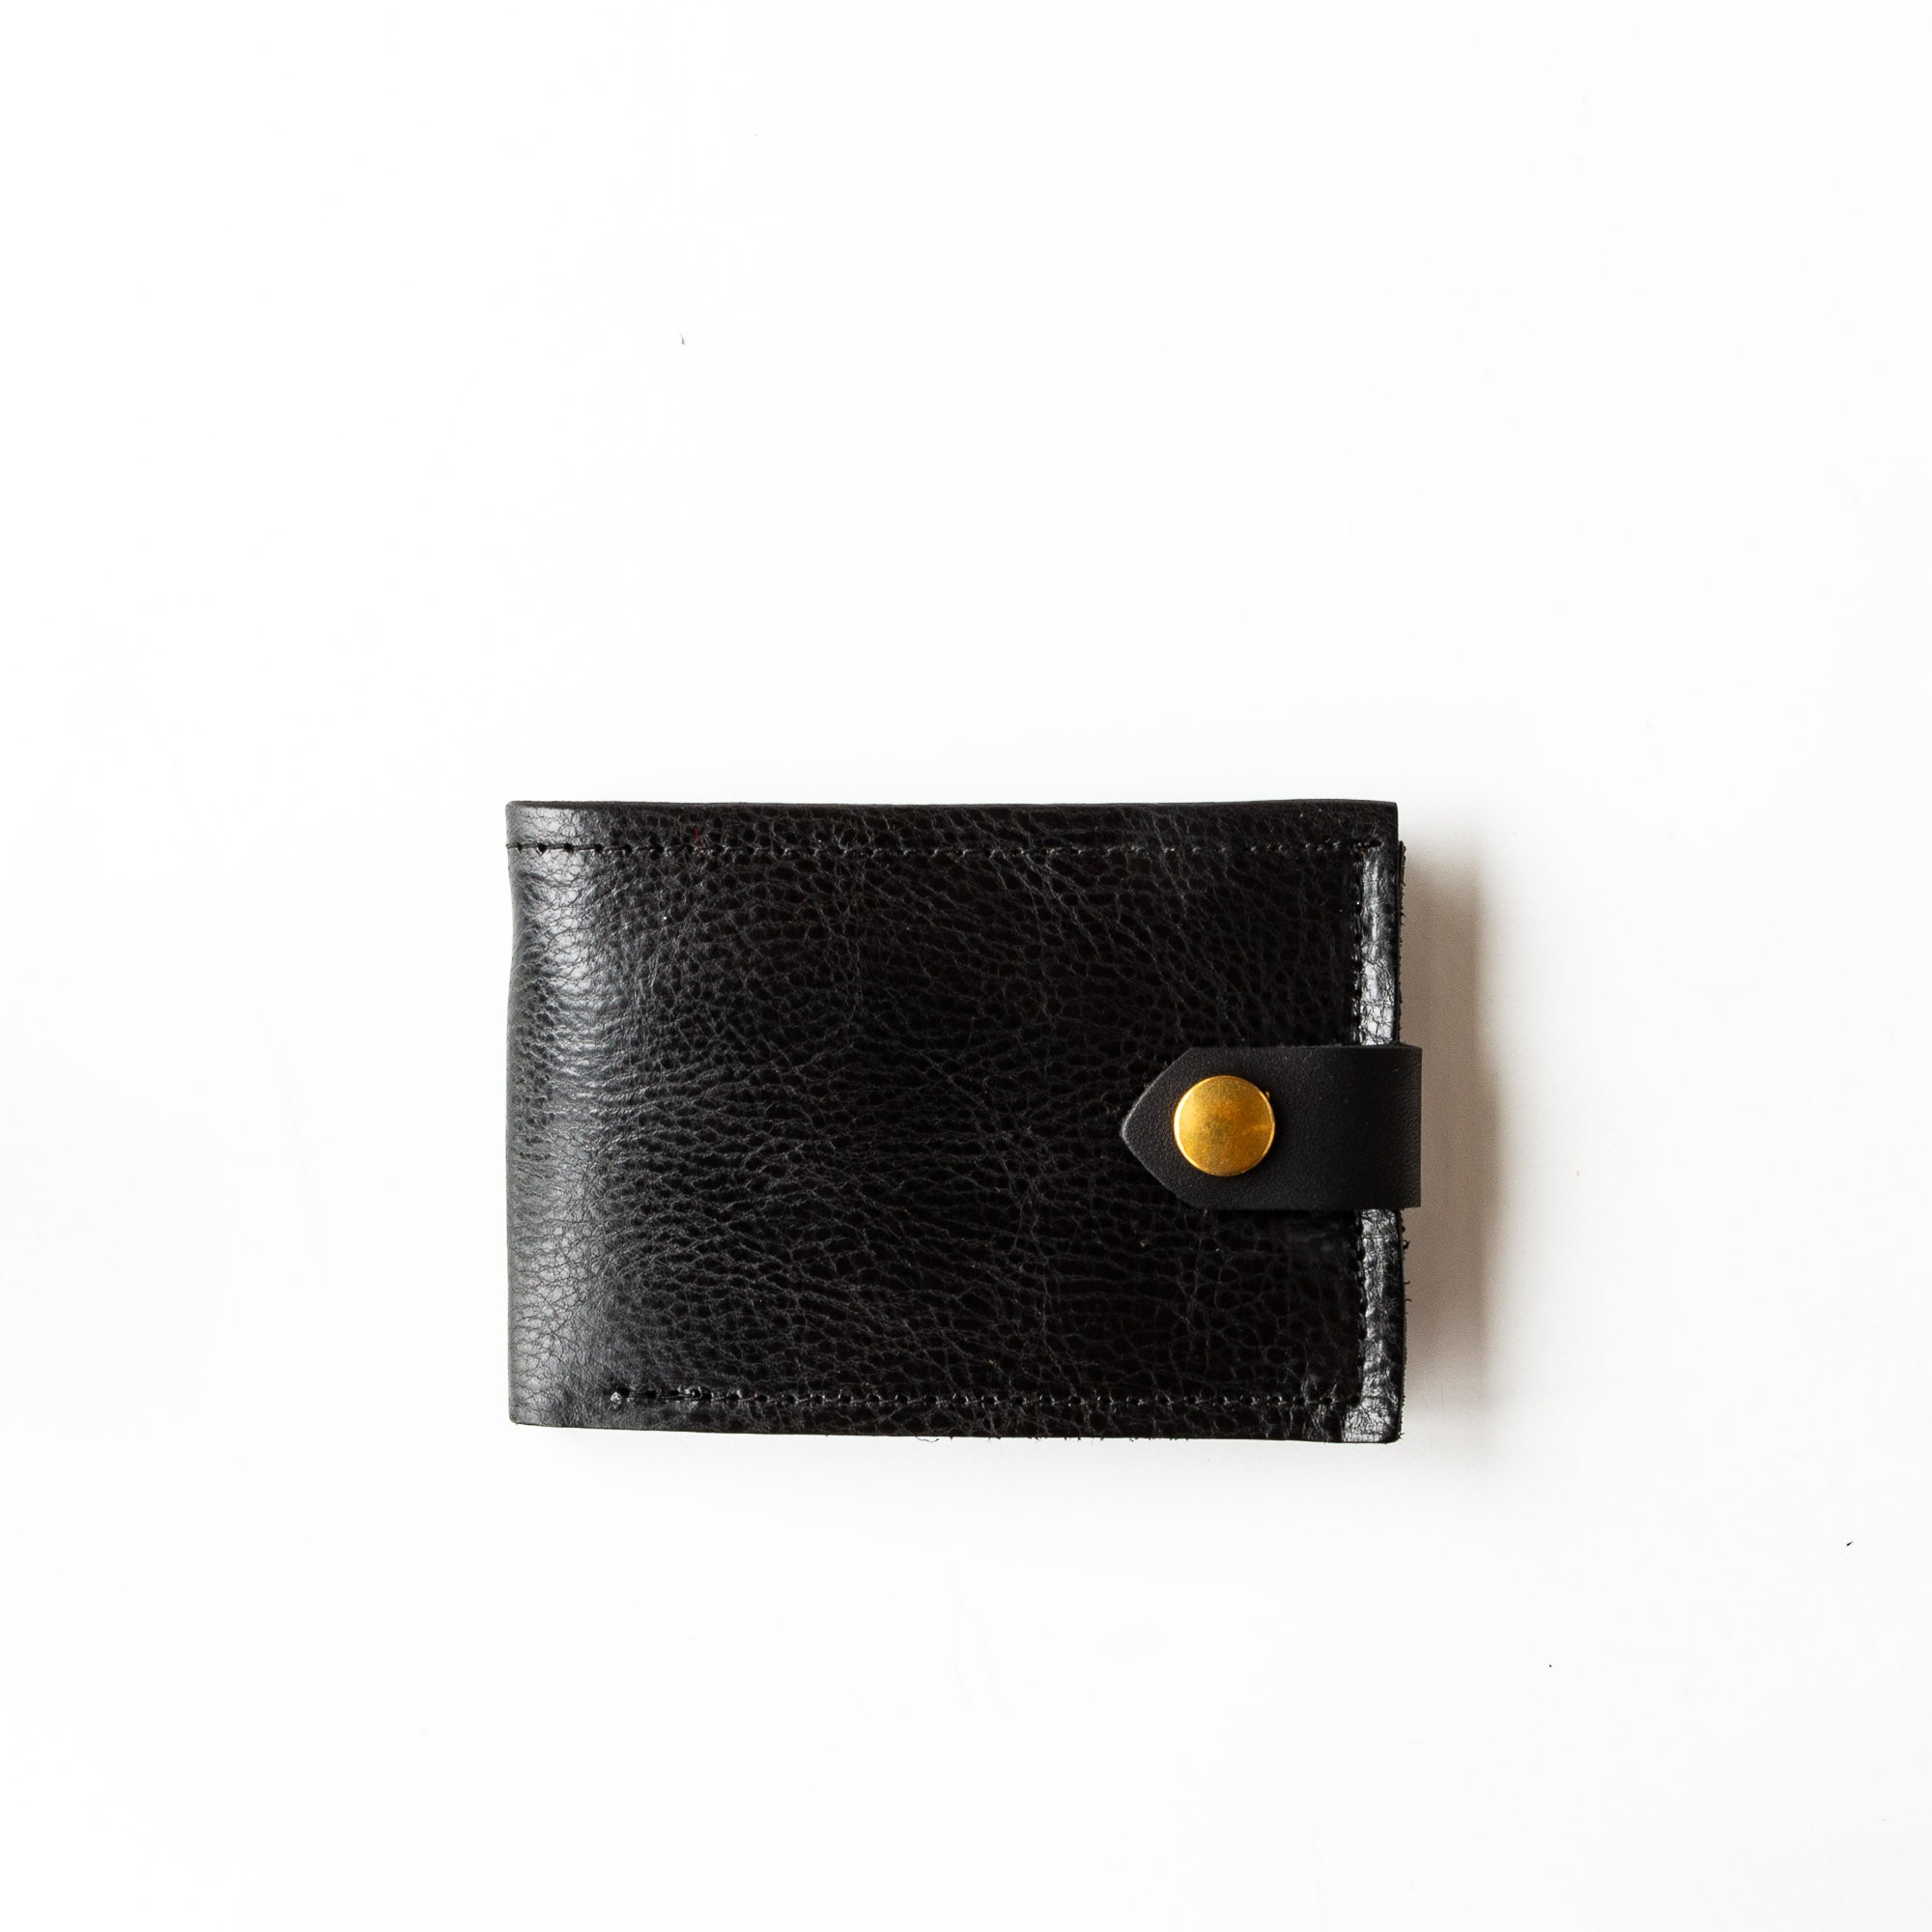 Oiled Black - St-Joseph - Classic Unisex Wallet / Card Holder - Sold by Chic & Basta